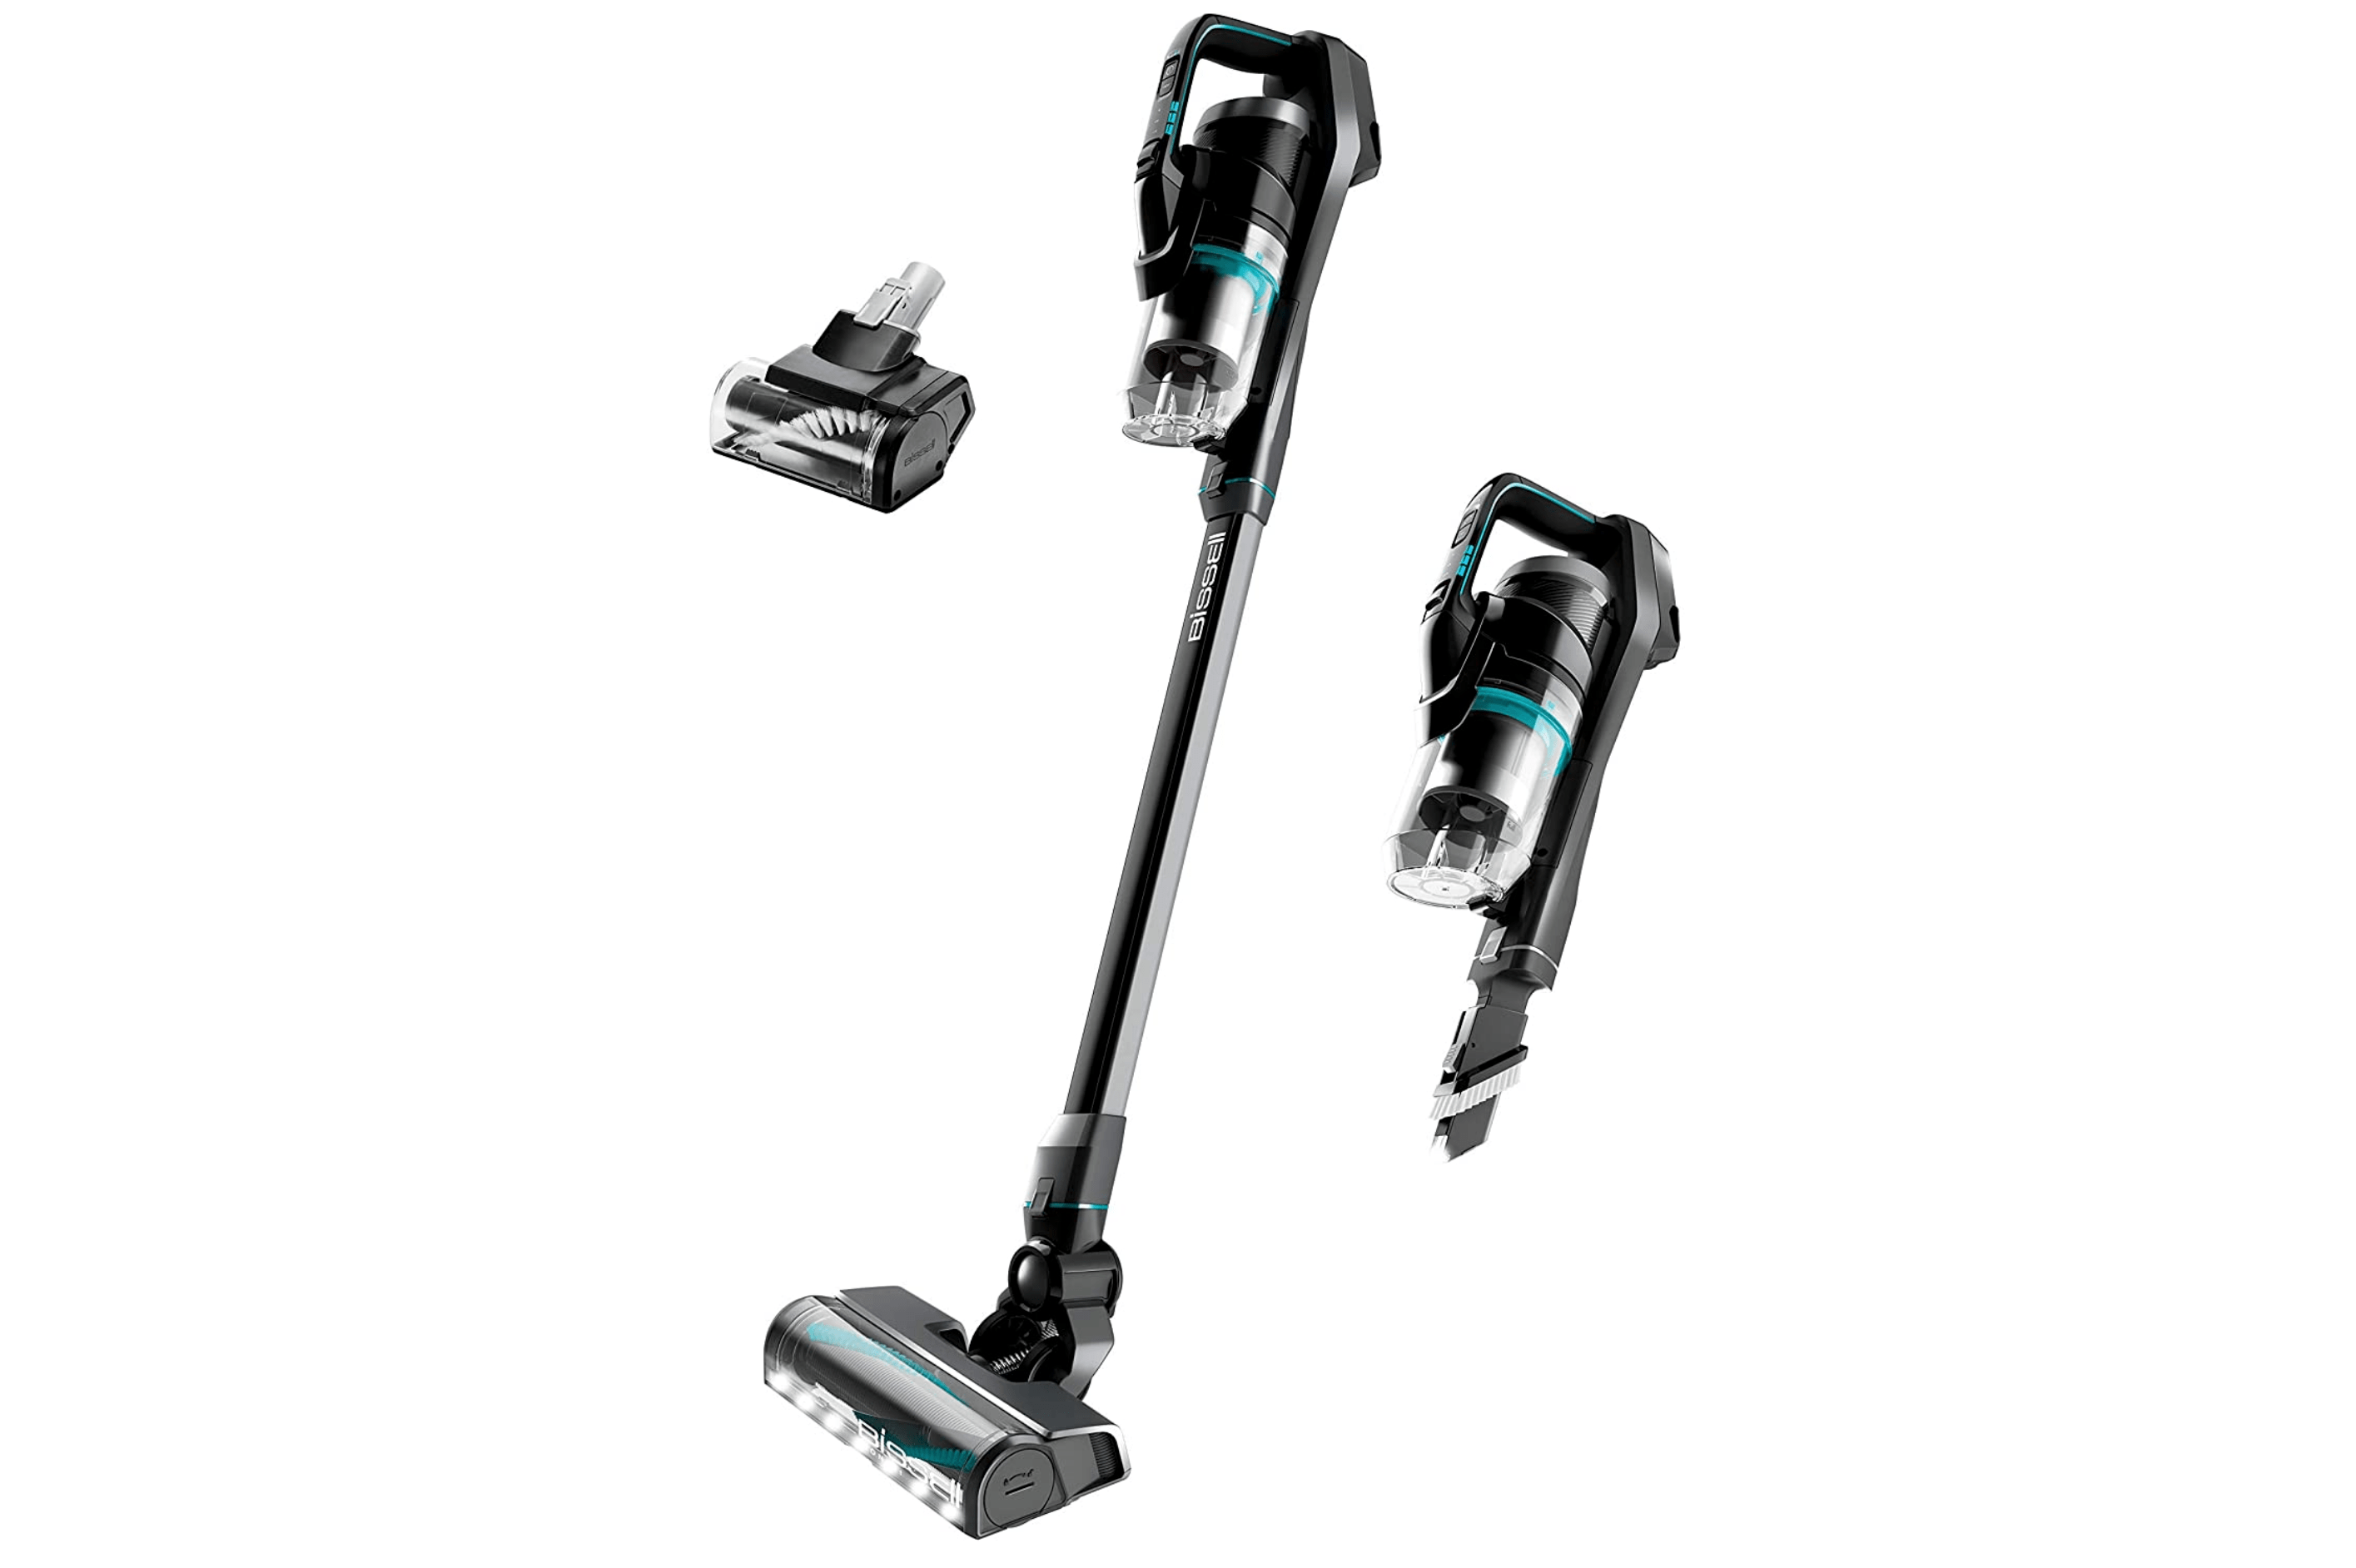 Prime Day Deal: Save Up To 50% On Bissell Vacuums